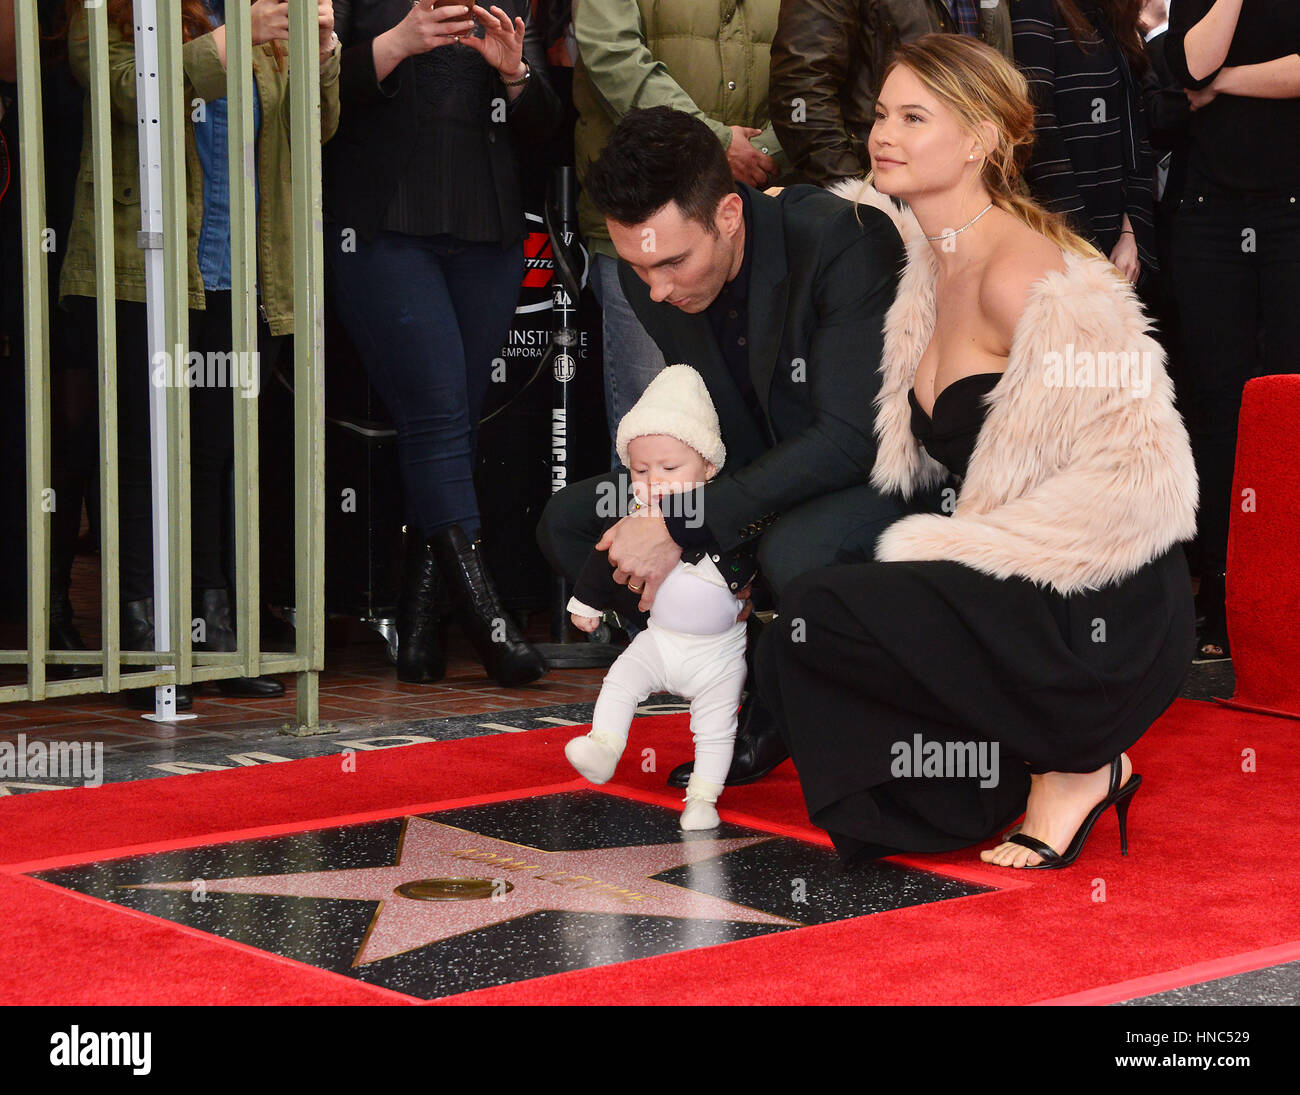 Los Angeles, USA. 10th February, 2017. a Adam Levine, wife ...